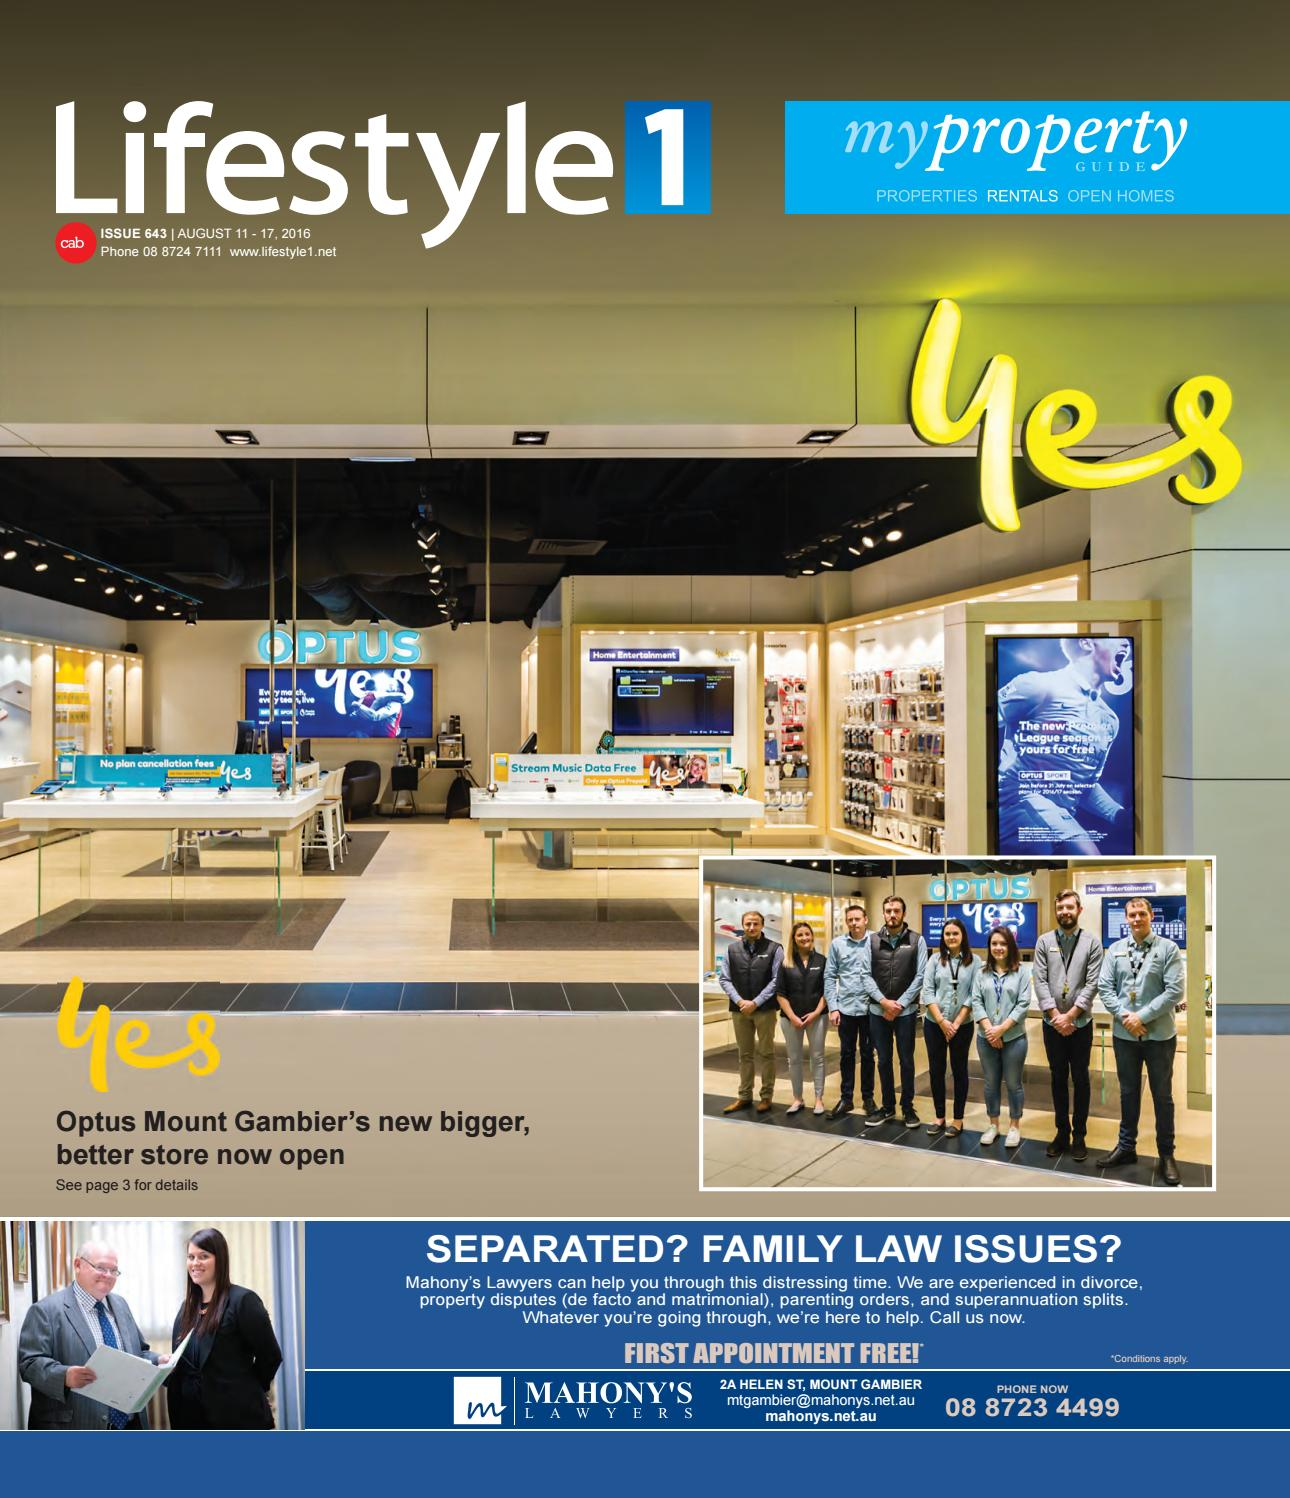 f04aa8815a9 Lifestyle 1 issue 643 by Lifestyle1 - issuu